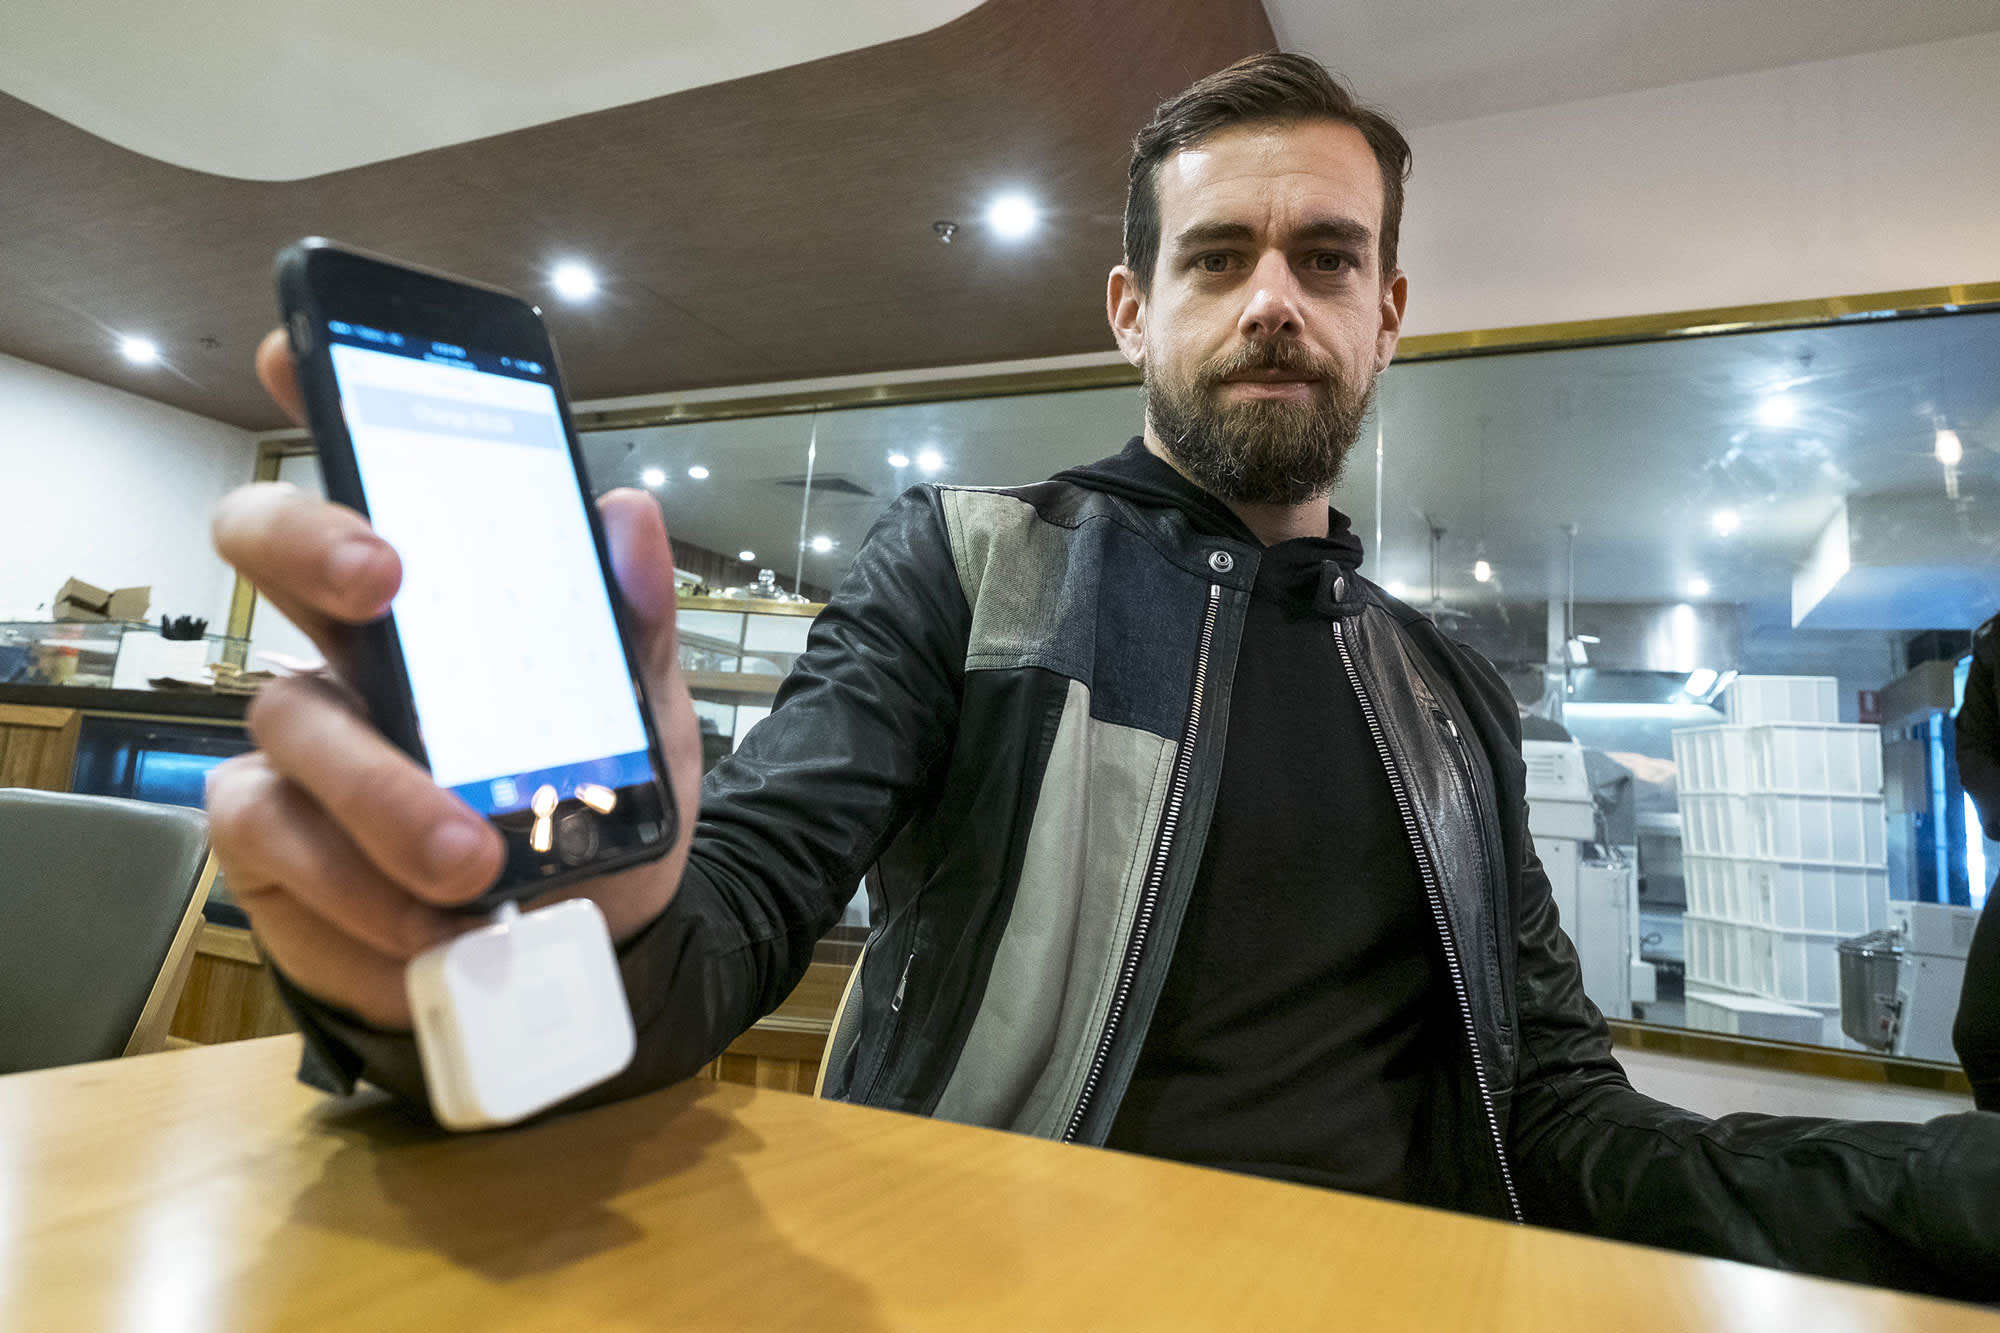 Square falls 9% on concerns of 'overlooked credit risk'